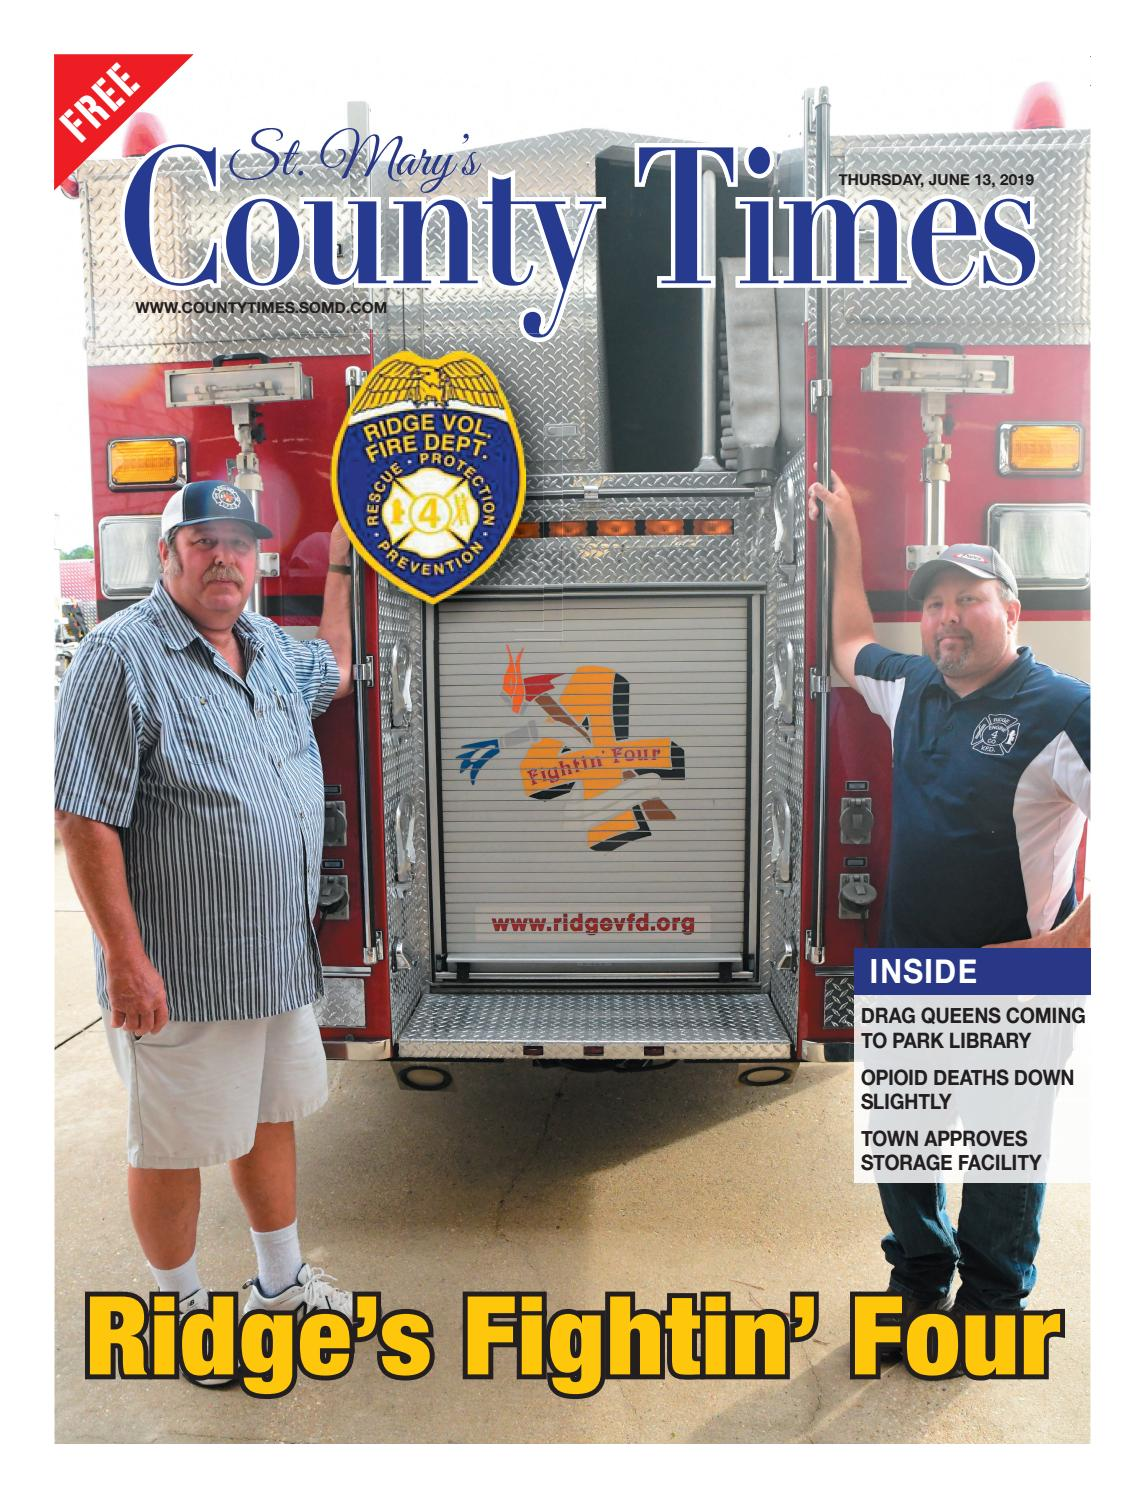 2019-06-13 St  Mary's County Times by Southern Maryland Online - issuu